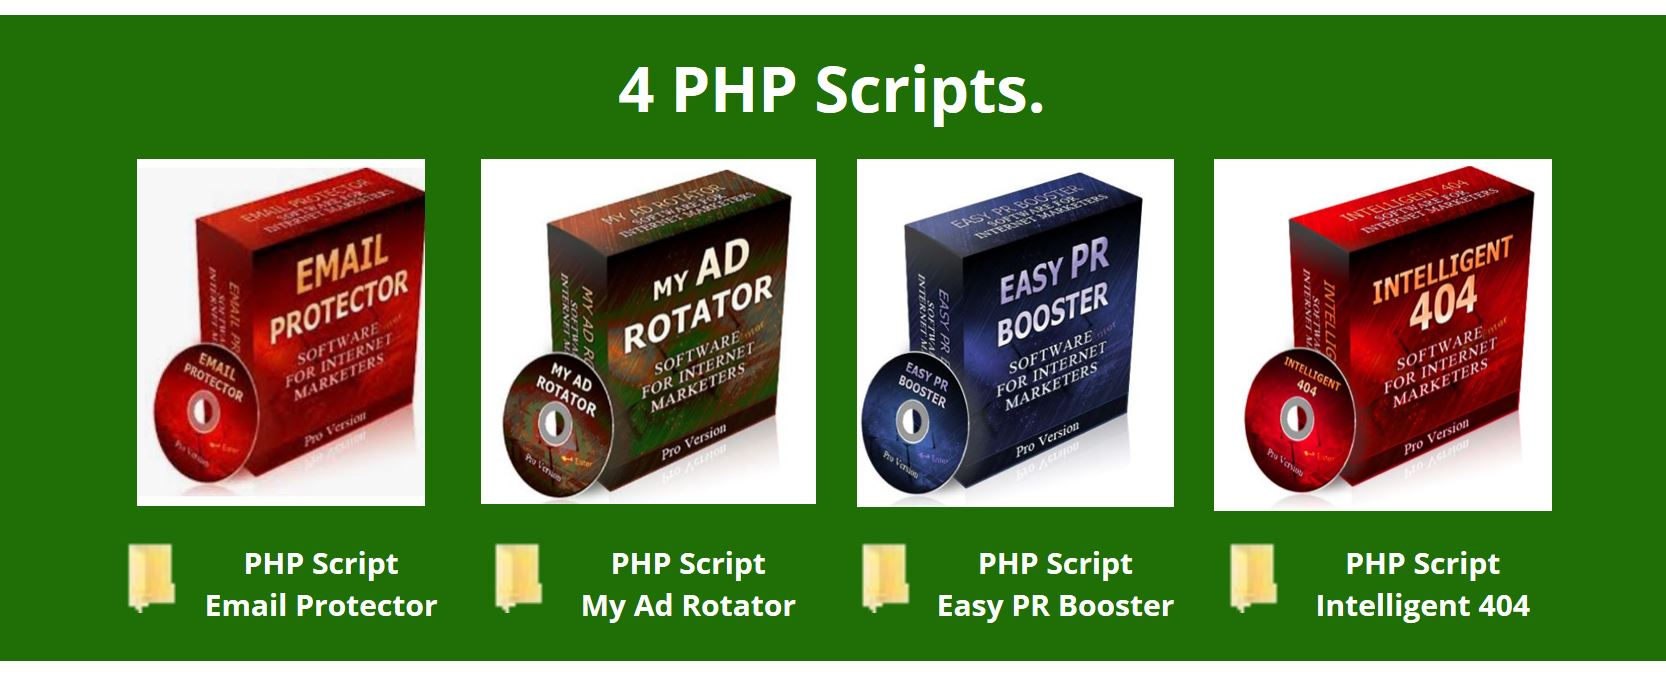 4 PHP Scripts